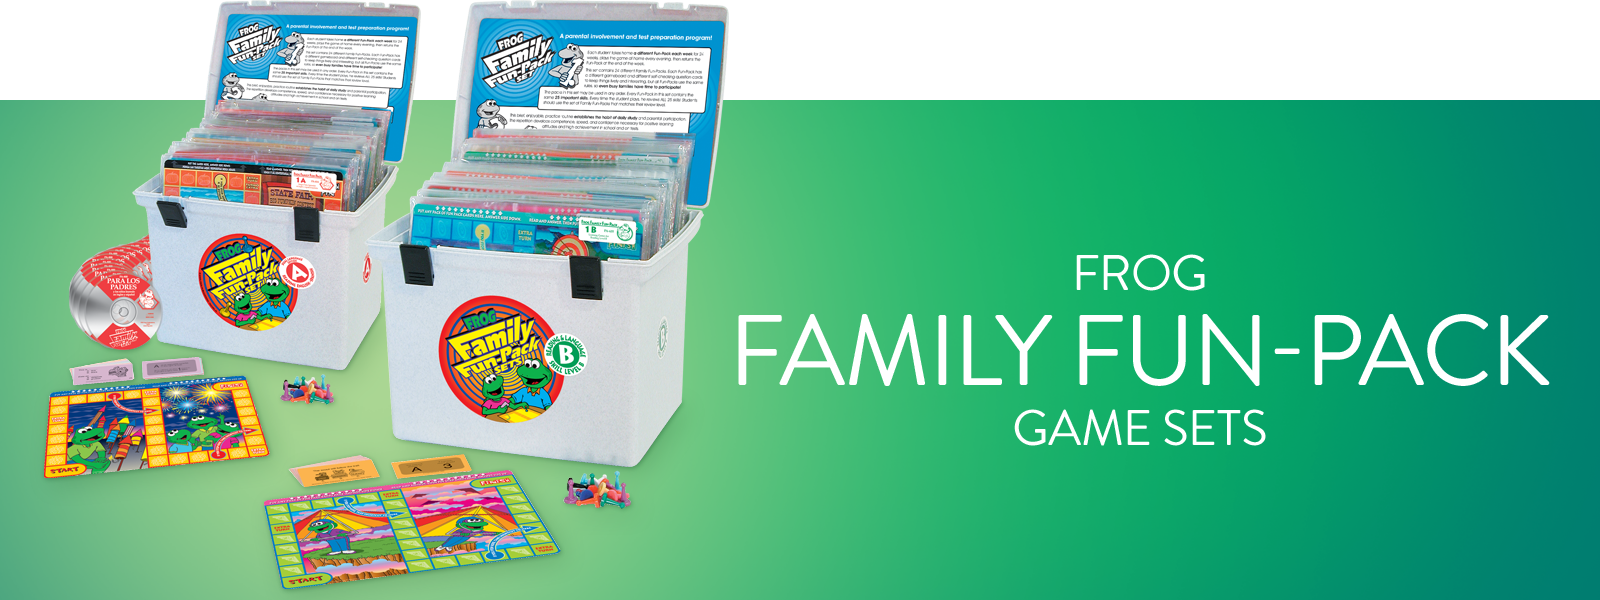 Frog Family Fun-Packs